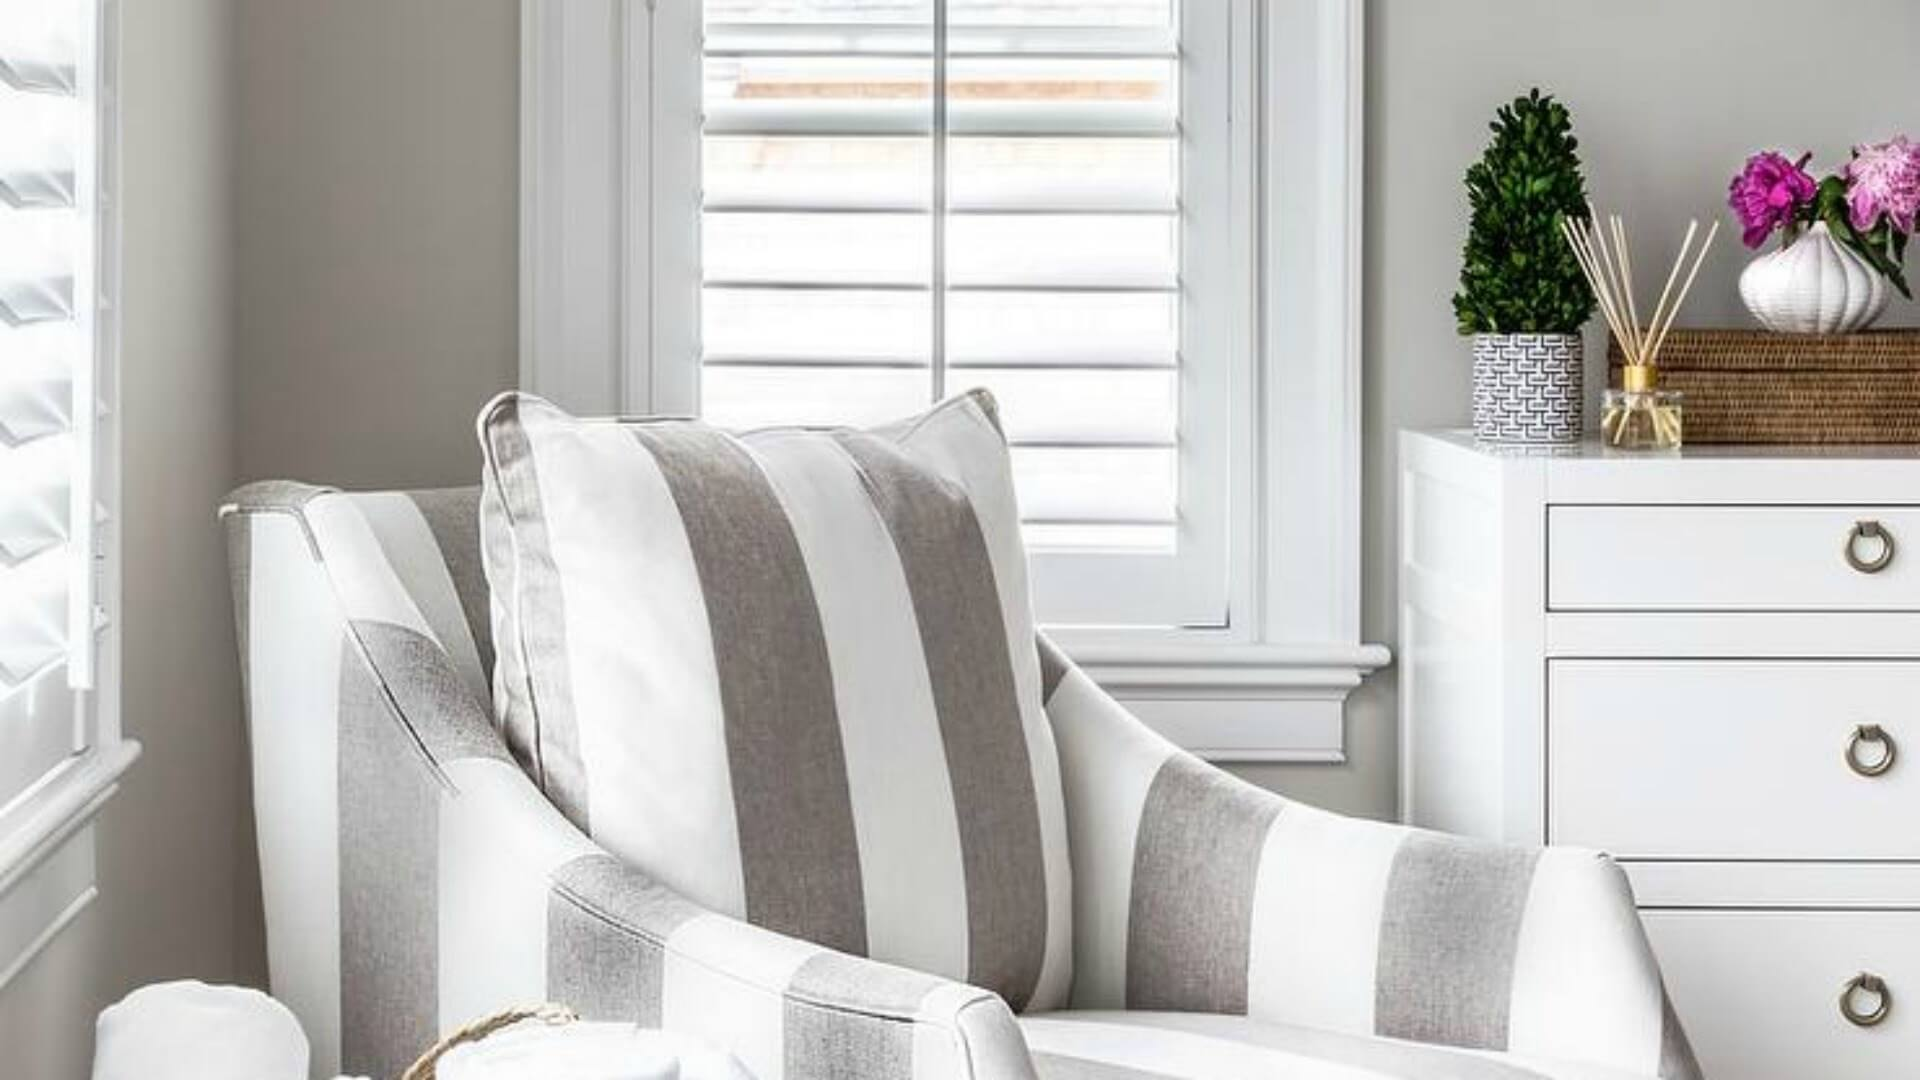 do plantation shutters keep heat in?